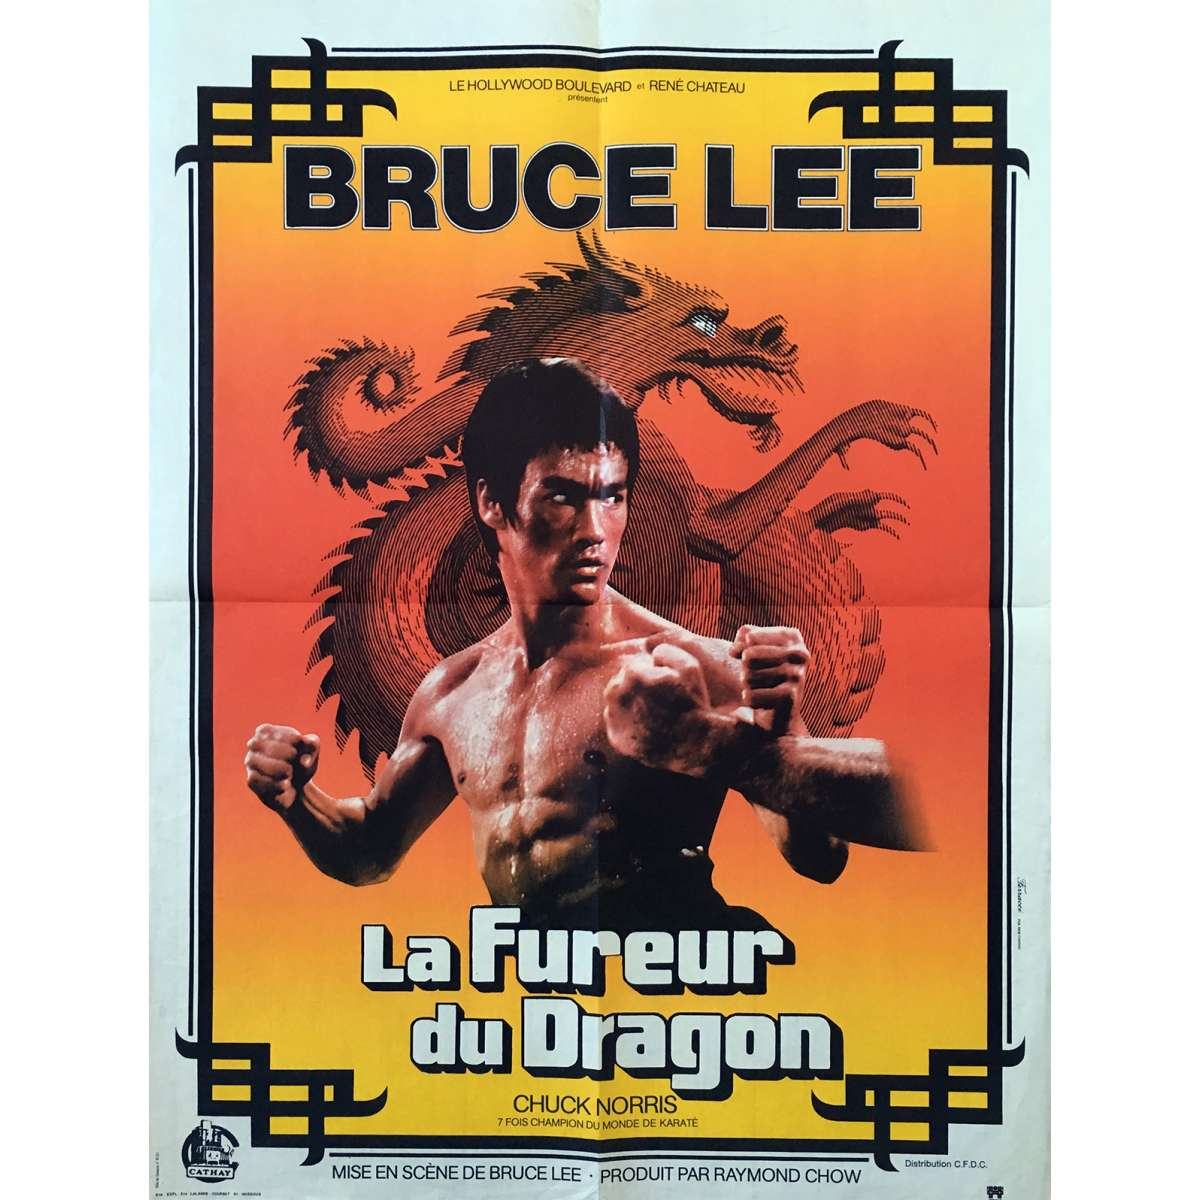 THE WAY OF THE DRAGON Movie Poster 23x32 In